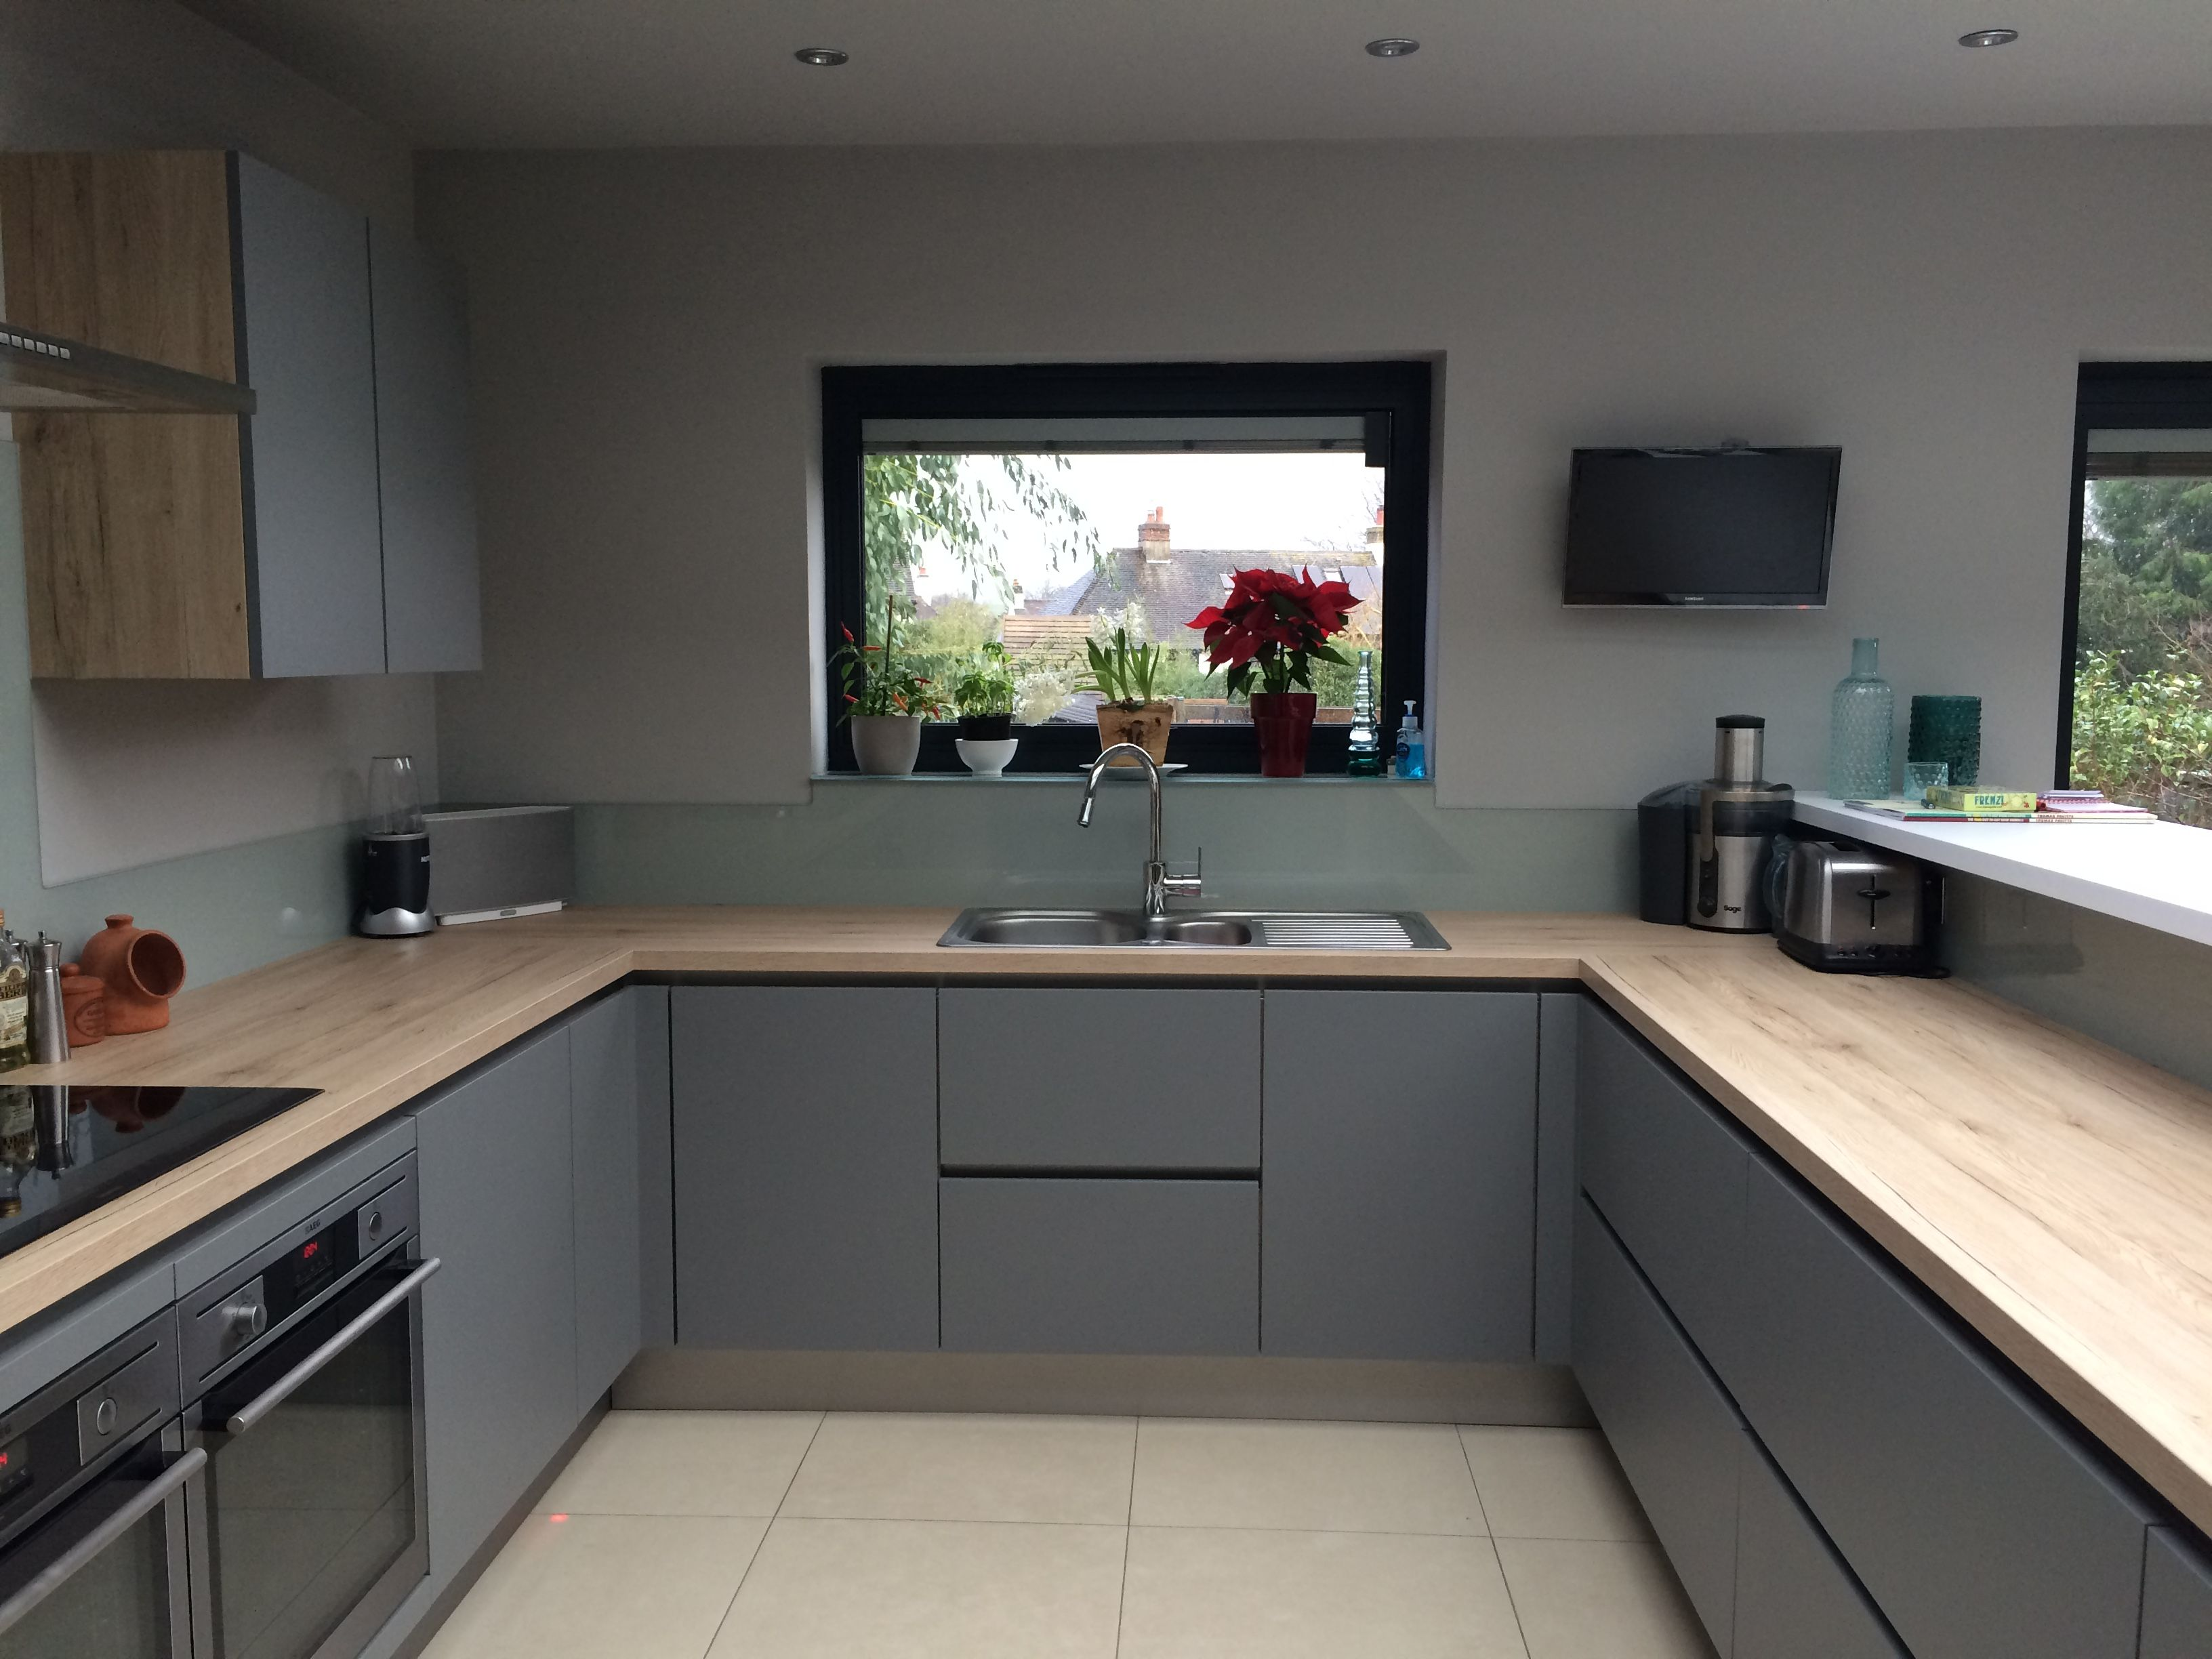 Kitchen Matt Lowes Stainless Steel Sinks Our Finally Grey Handless Units Oak Effect Surface And Glass Splashback